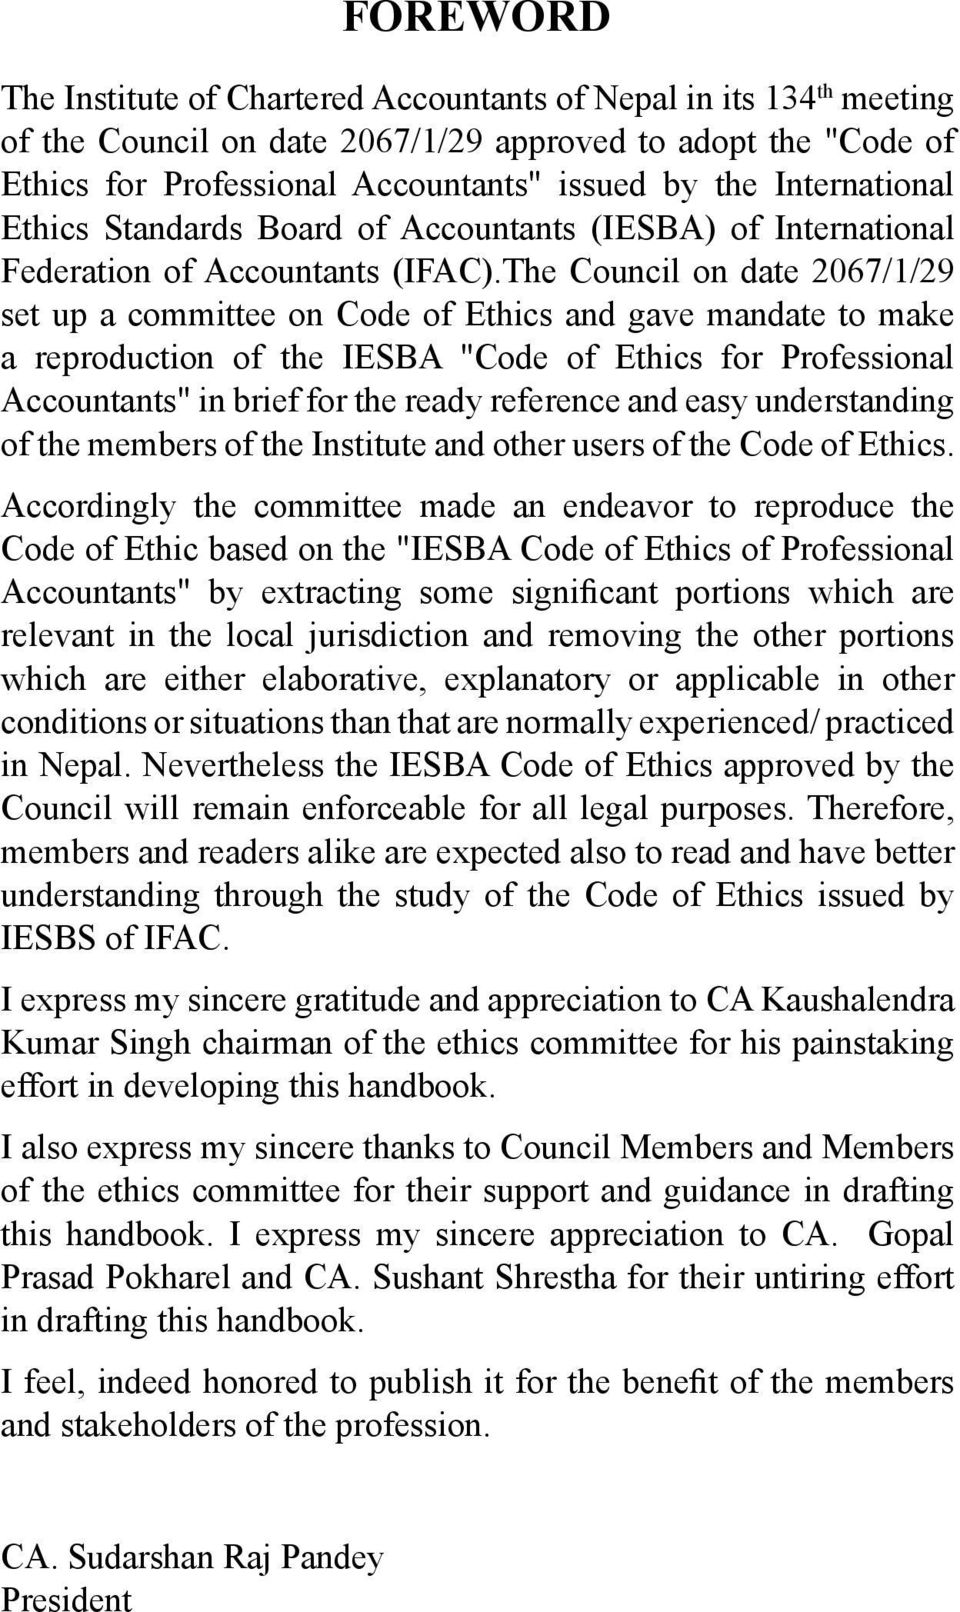 "The Council on date 2067/1/29 set up a committee on Code of Ethics and gave mandate to make a reproduction of the IESBA ""Code of Ethics for Professional Accountants"" in brief for the ready reference"